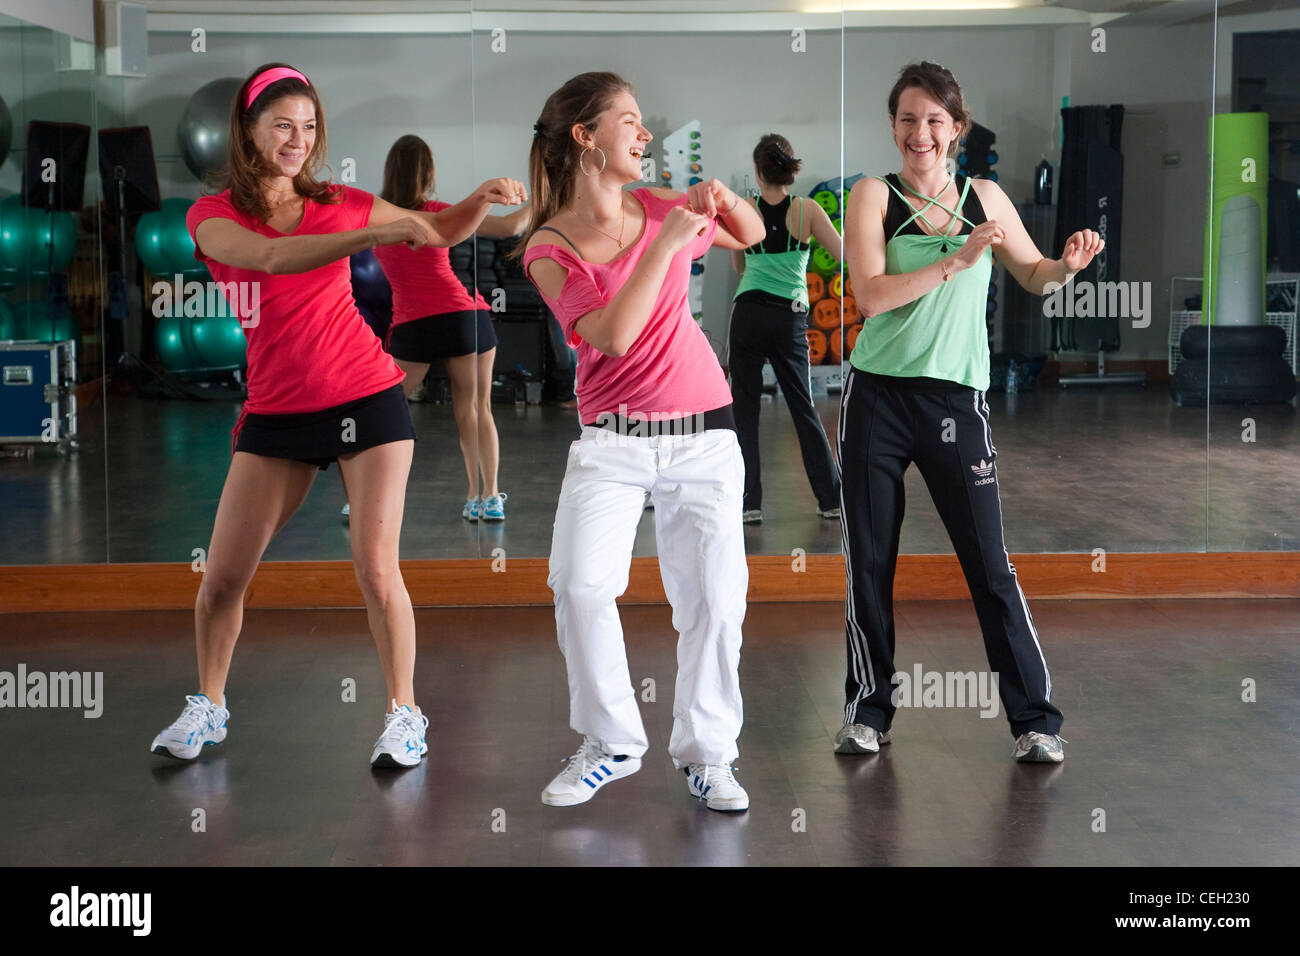 Zumba Studio Stock Photos Images Alamy Dance Steps Diagram Basic Latin American Instructed At A Fitness Class In Uk Image